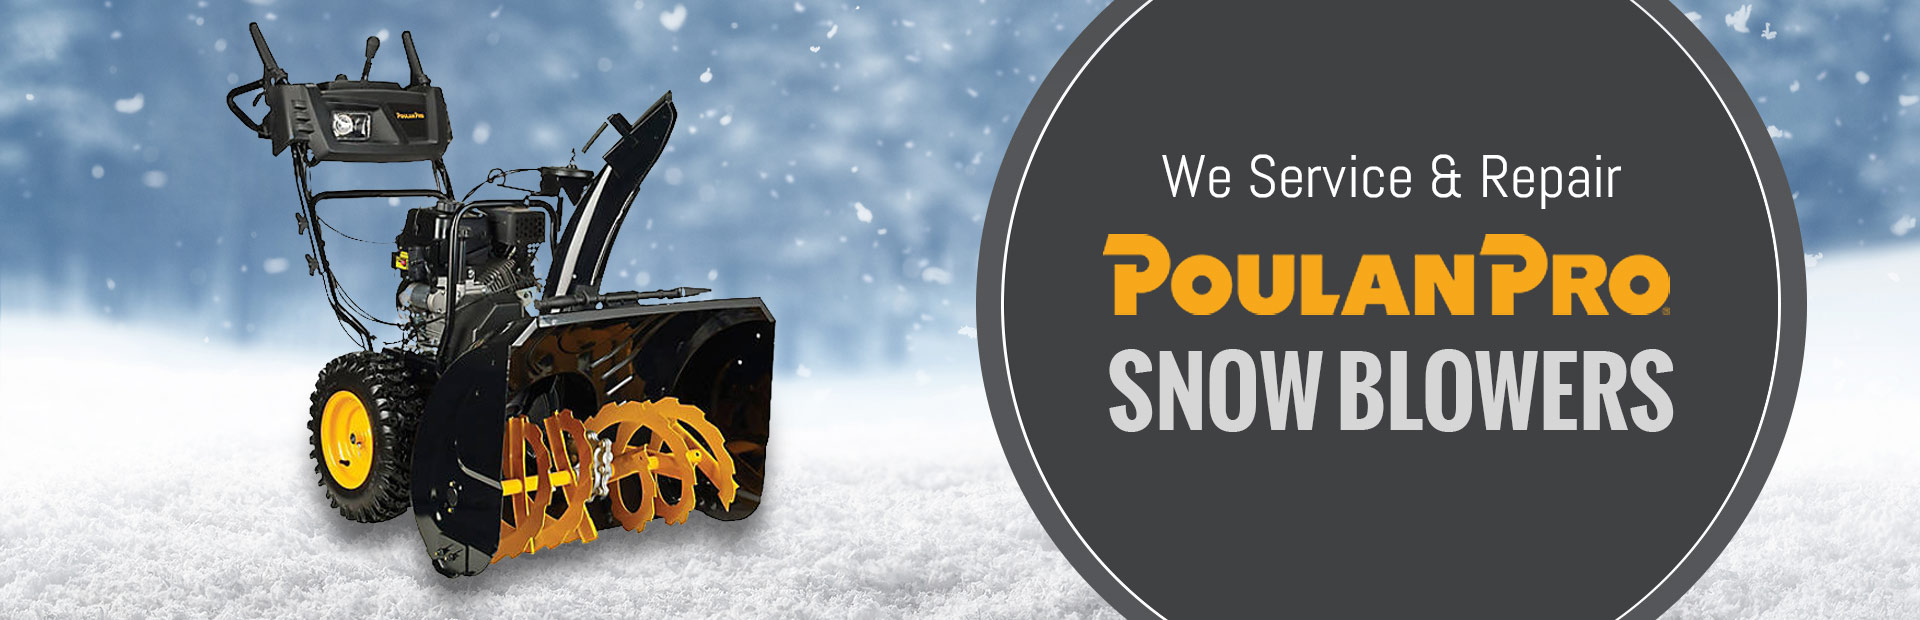 We service and repair Poulan Pro snow blowers.